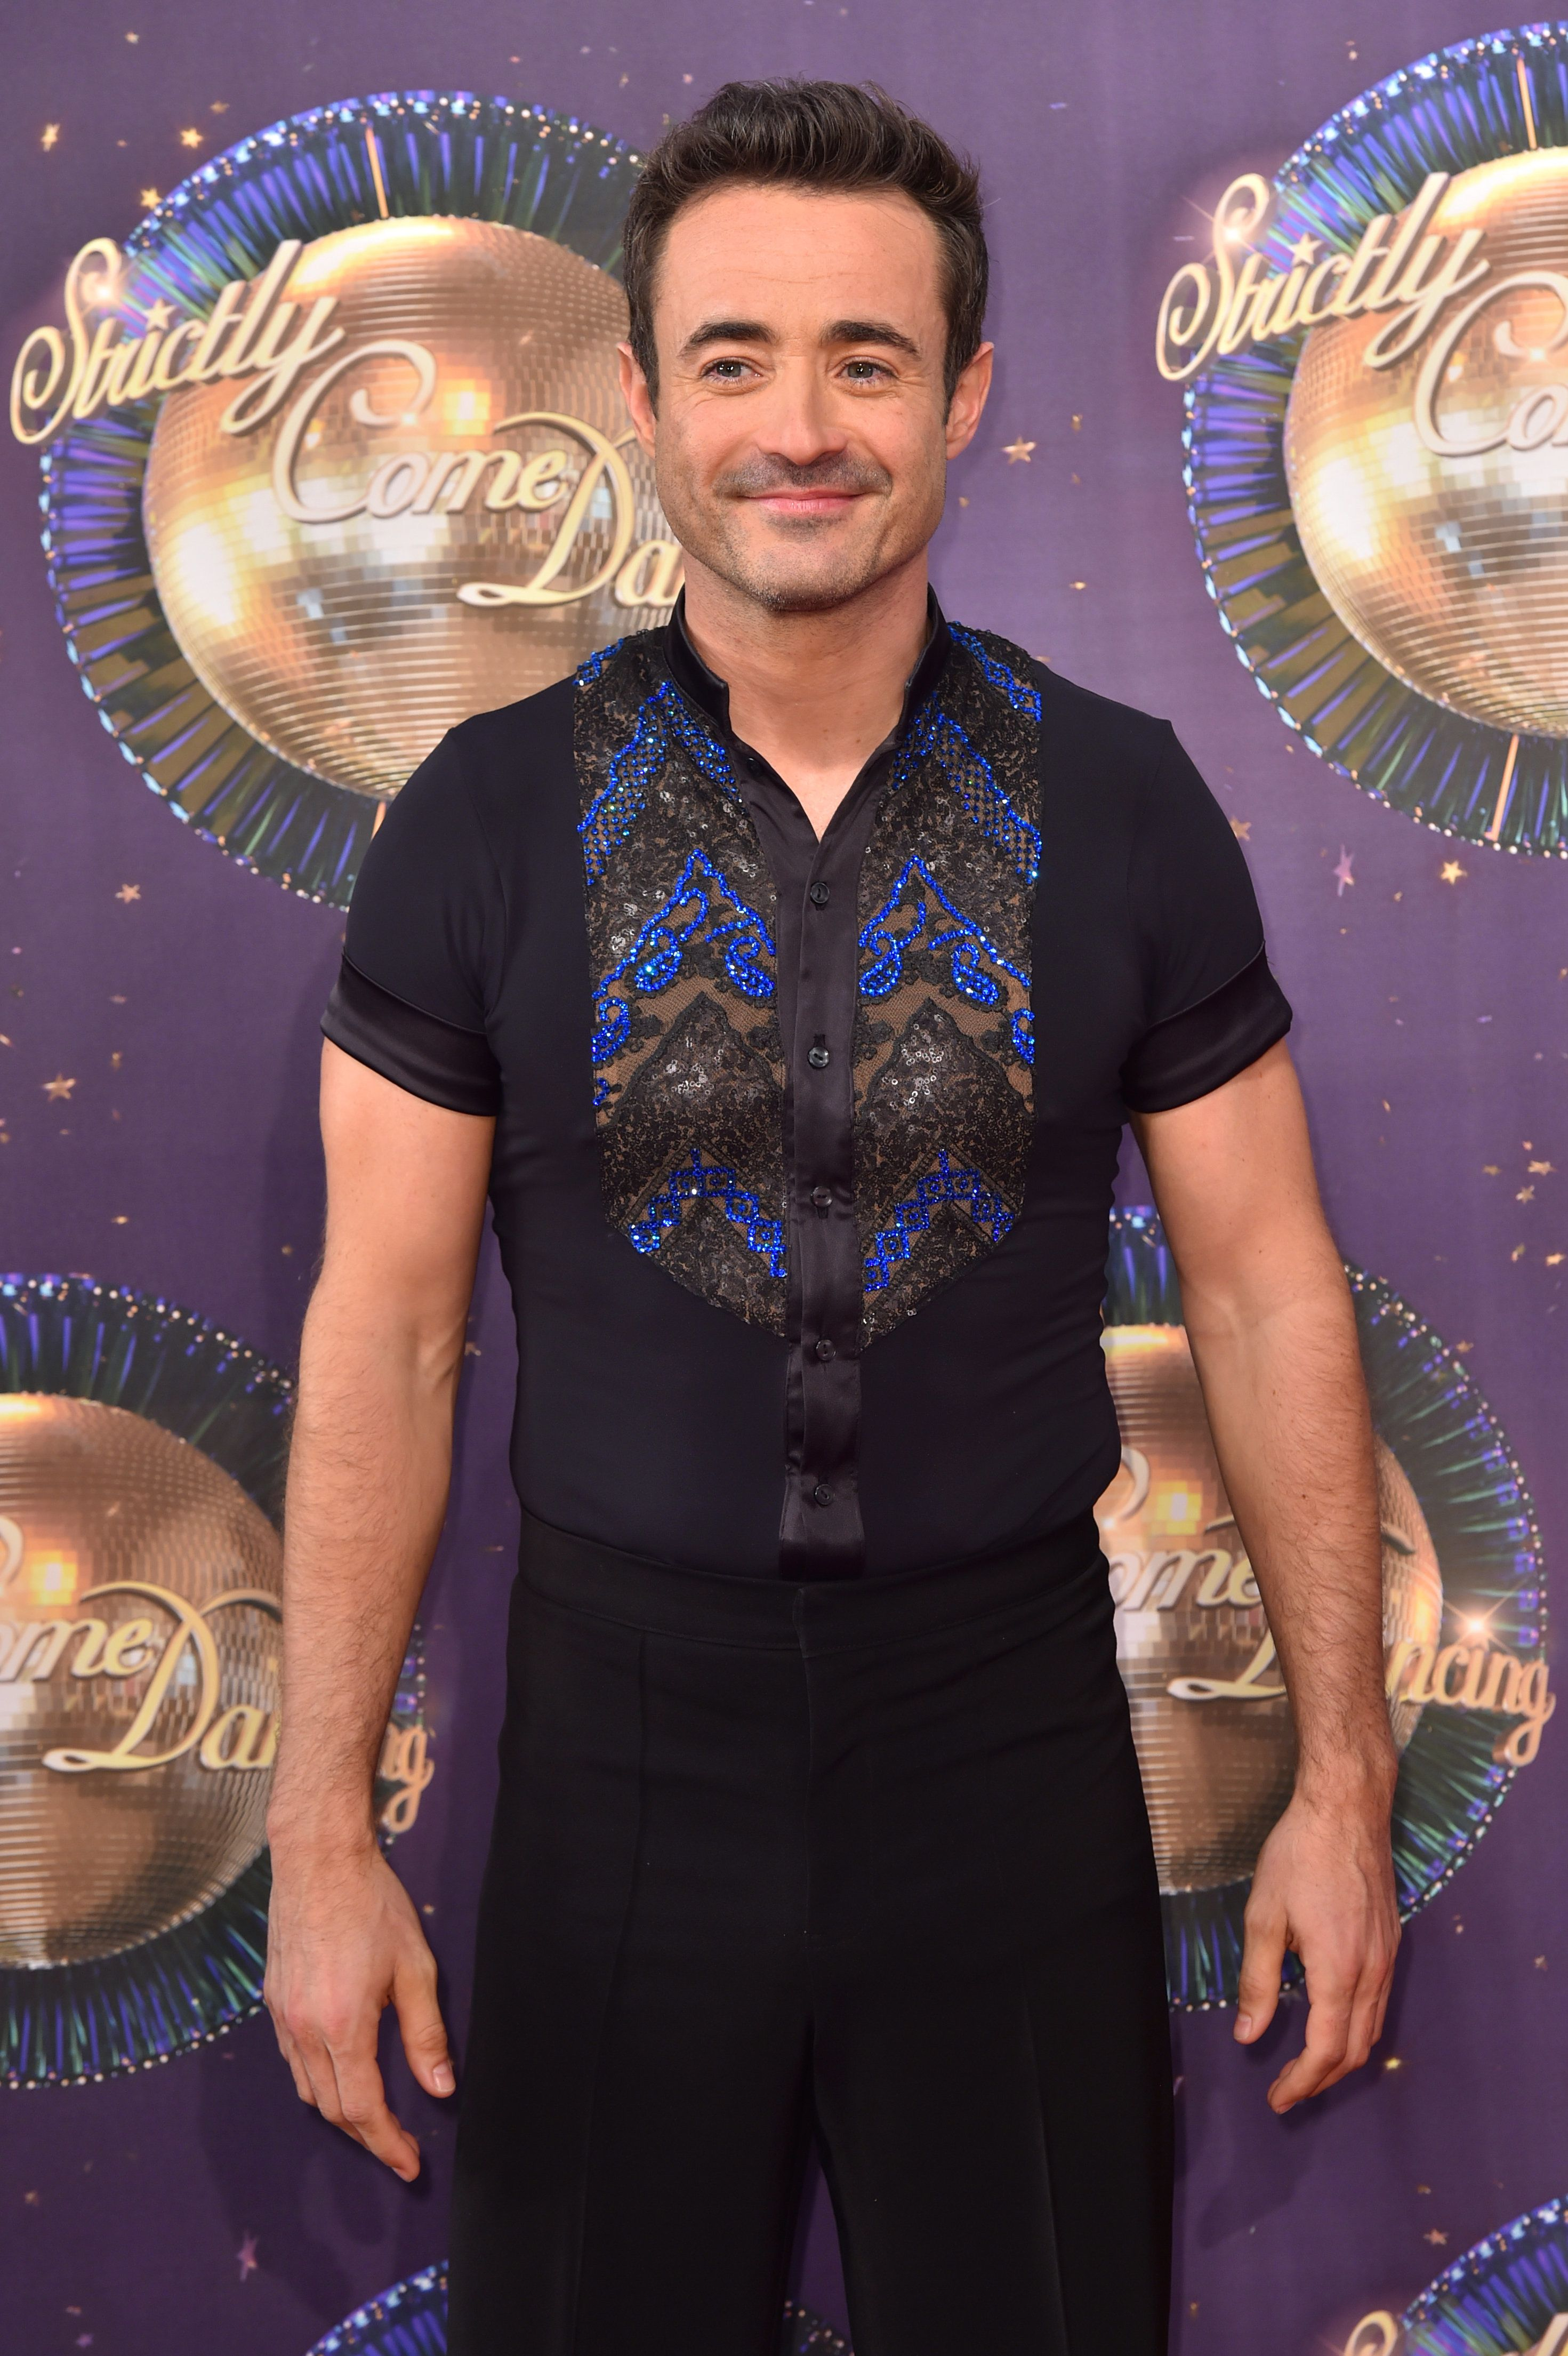 Reigning 'Strictly' Champion Joe McFadden Defends This Year's Line-Up